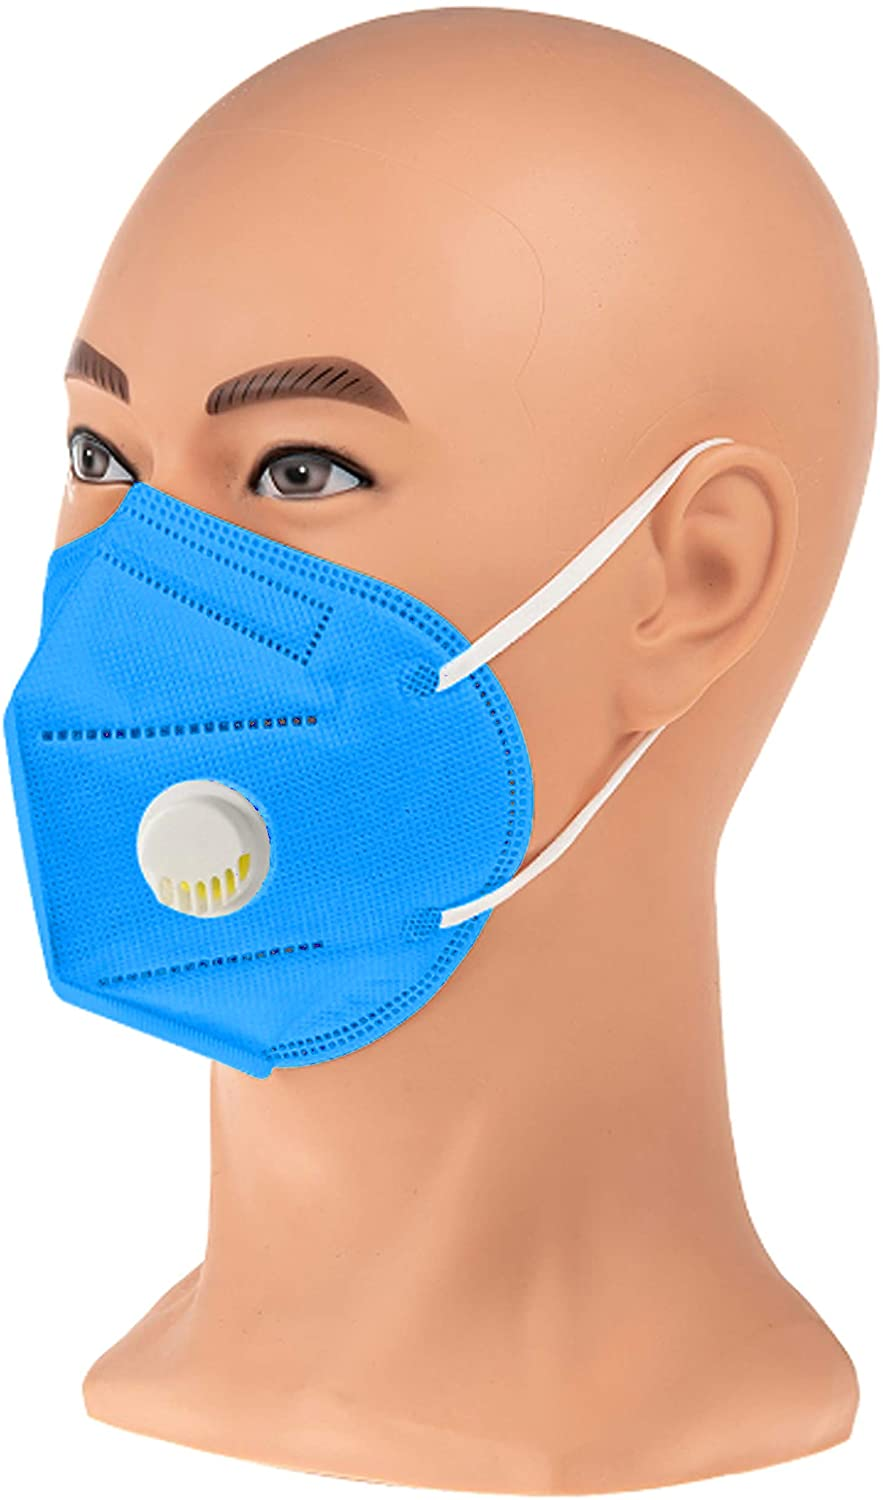 COOLINKO Light Blue Disposable Face Masks 5-Layers>95% Effectiveness Breathable Non-Woven with Nose Wire and Ear Loops - 5-Ply Protective Cotton Mouth Muffle Guard Covering Mask (4 Masks)